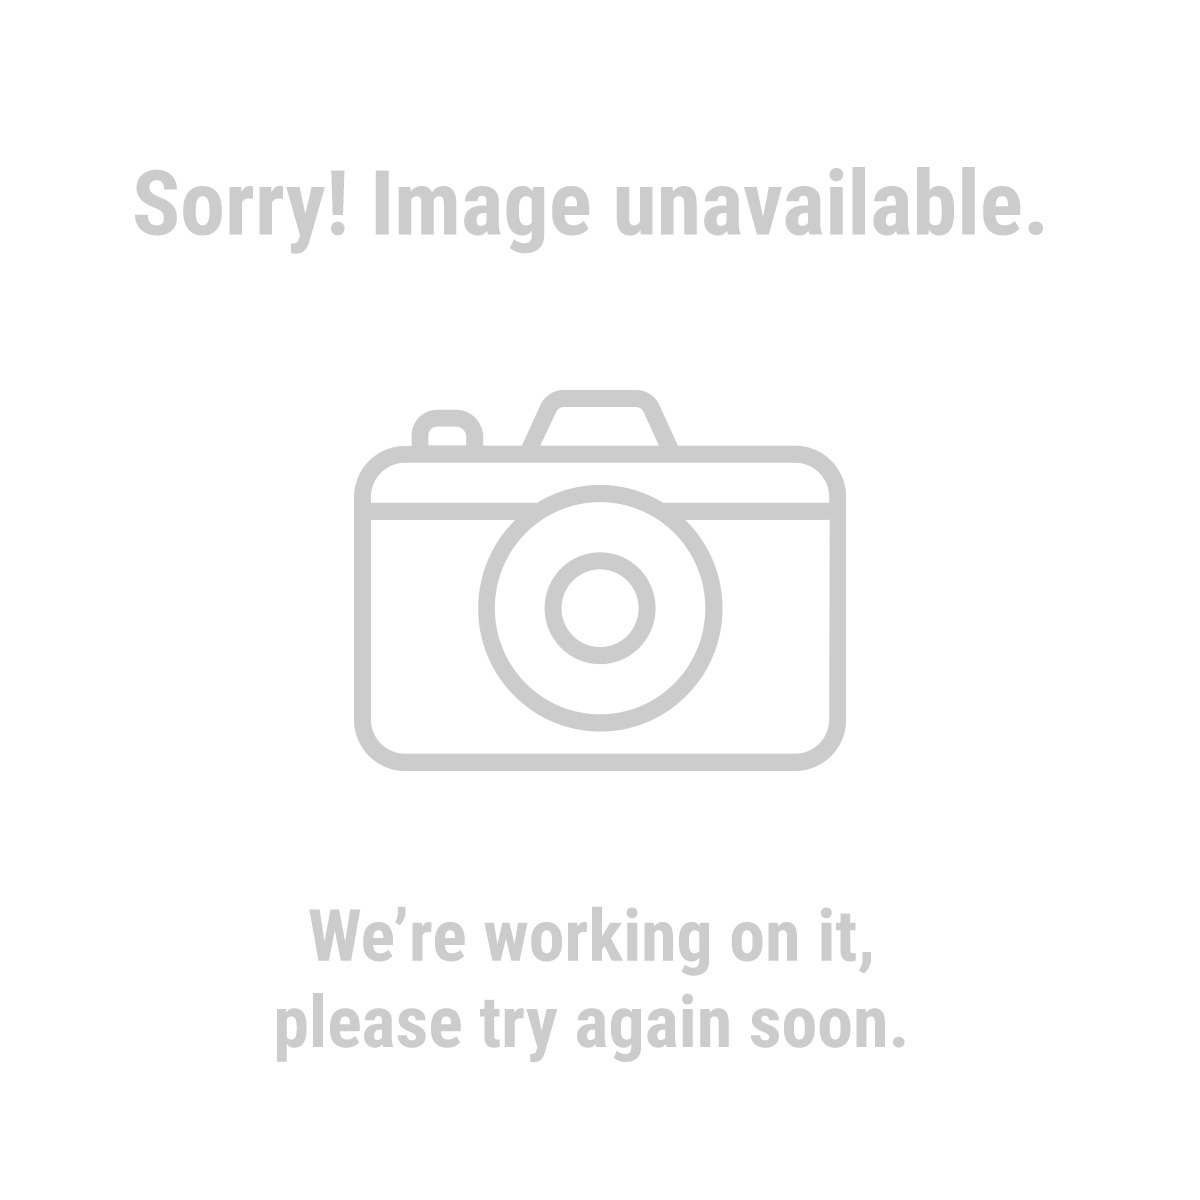 Predator Generators 69729 212cc, 4000 Watts Max/3200 Watts Rated Portable Generator